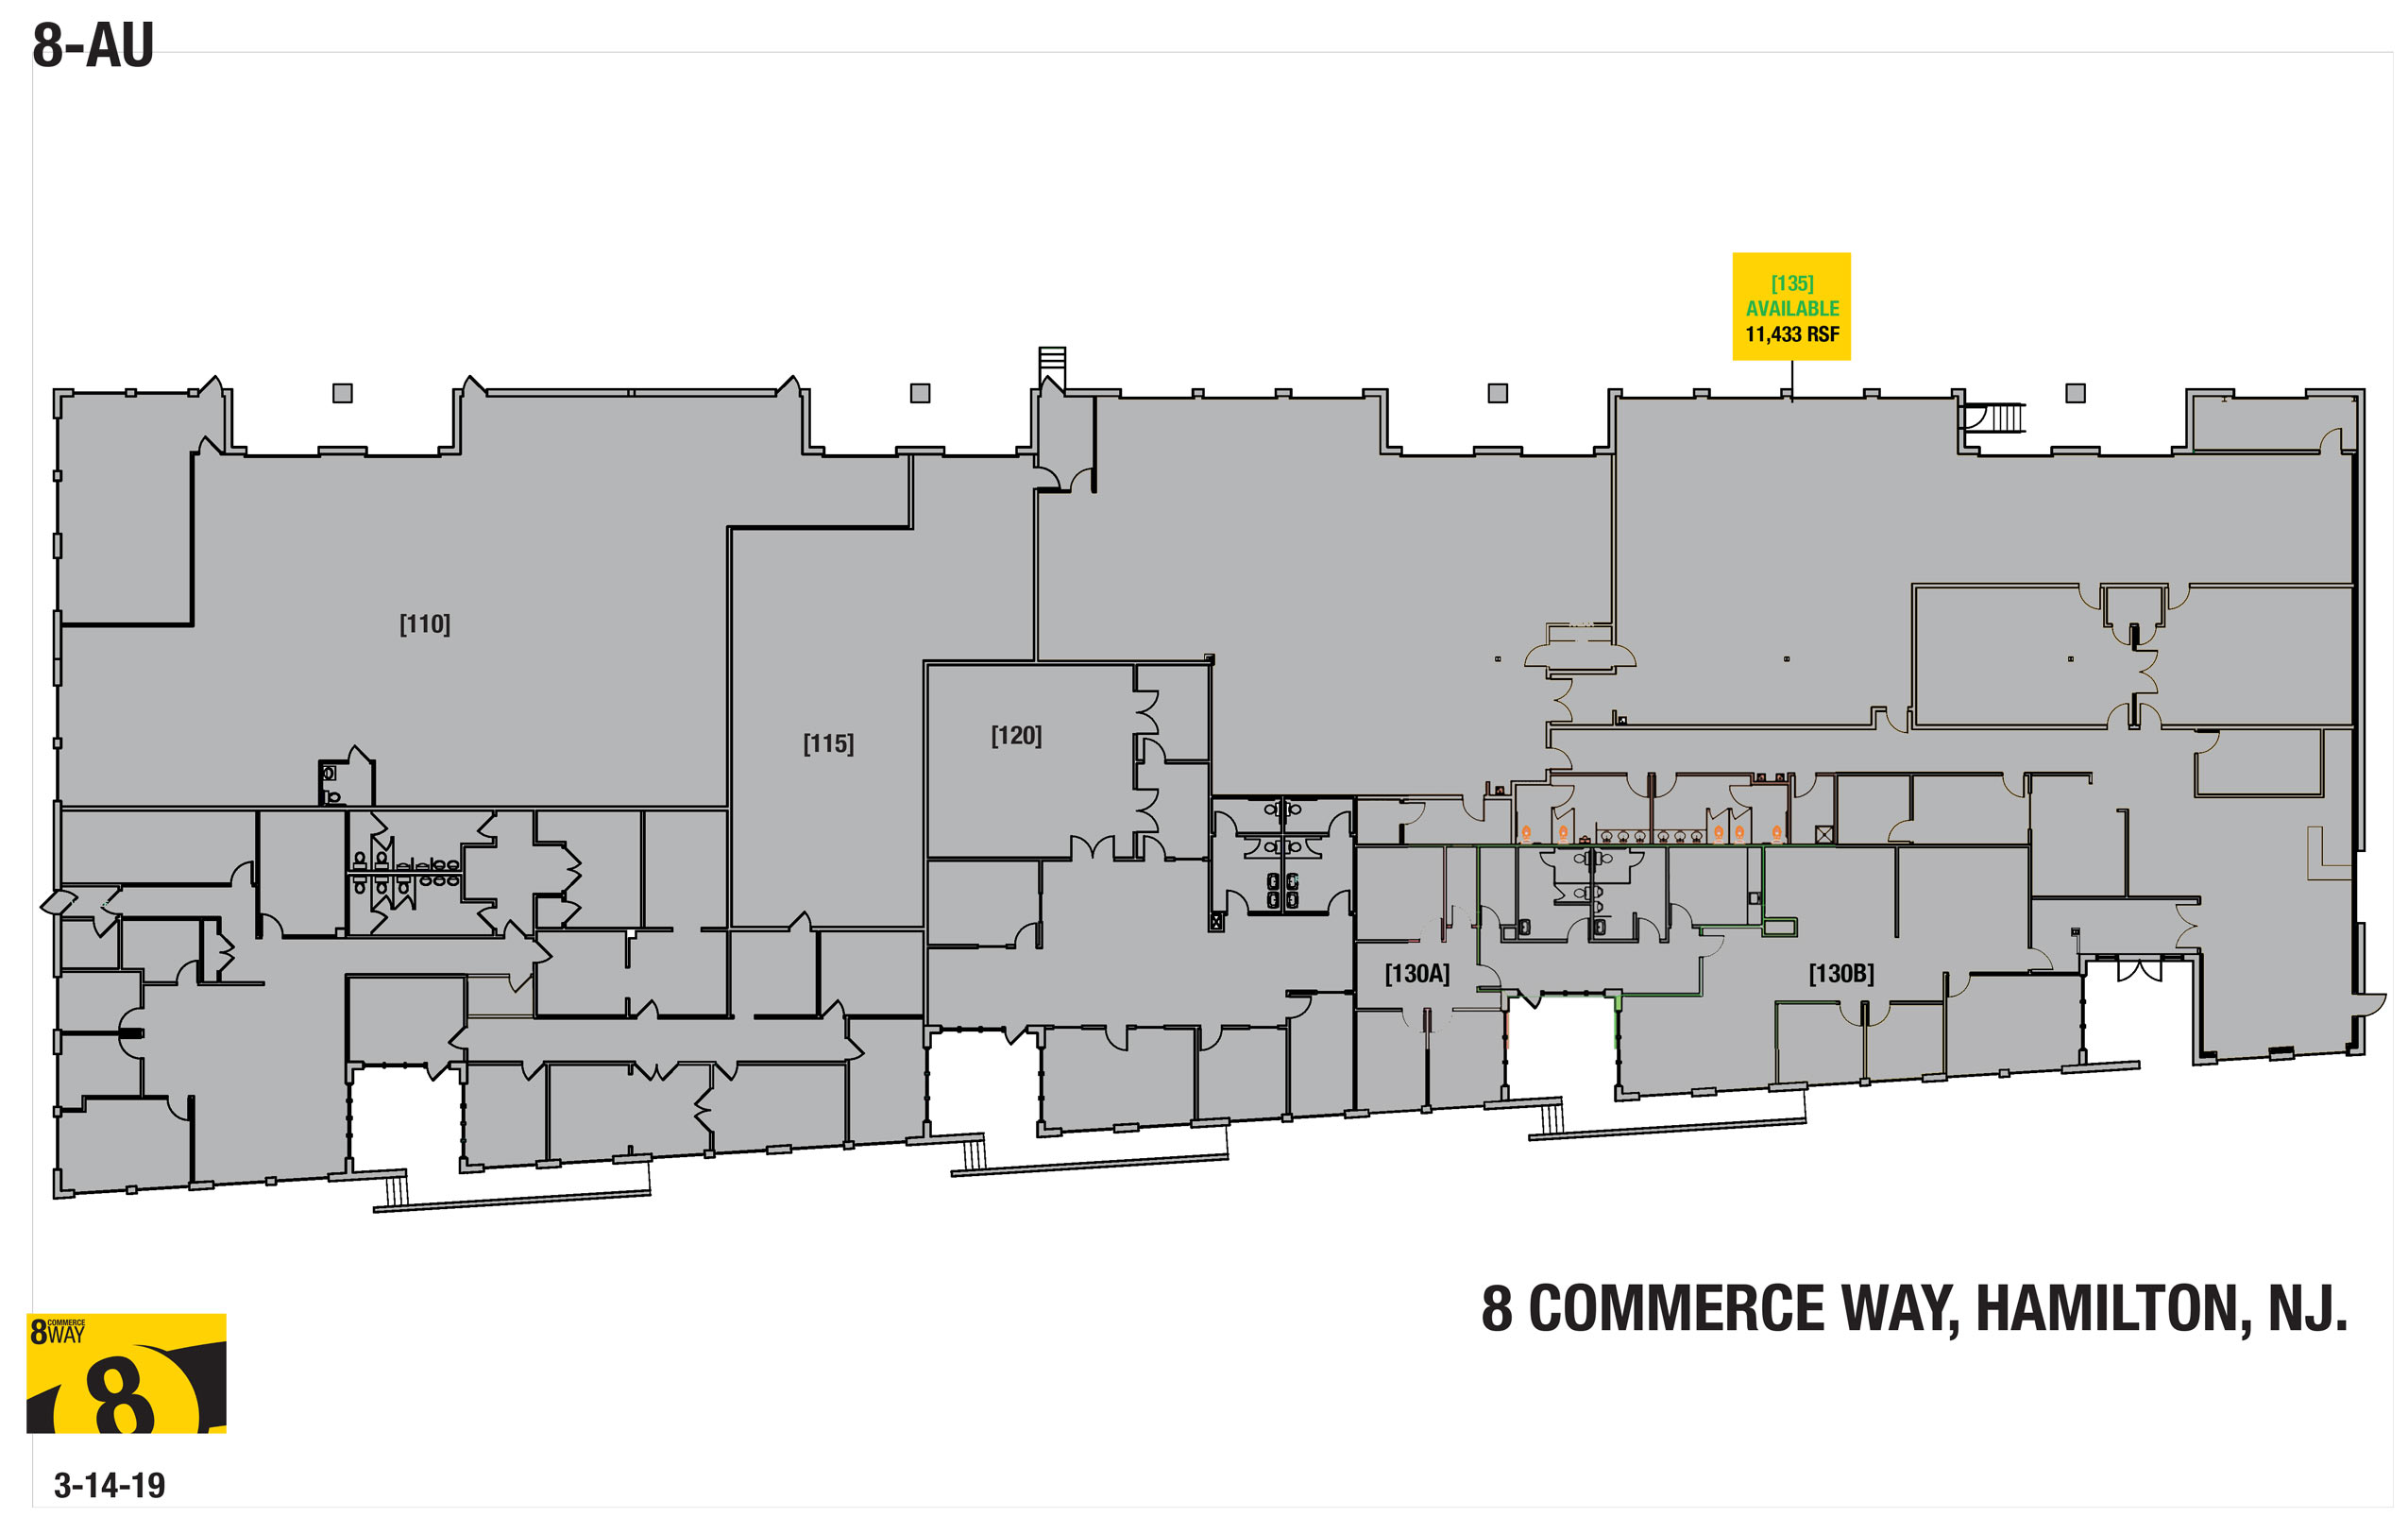 8 Commerce Way - 8-2-17 - floorplan